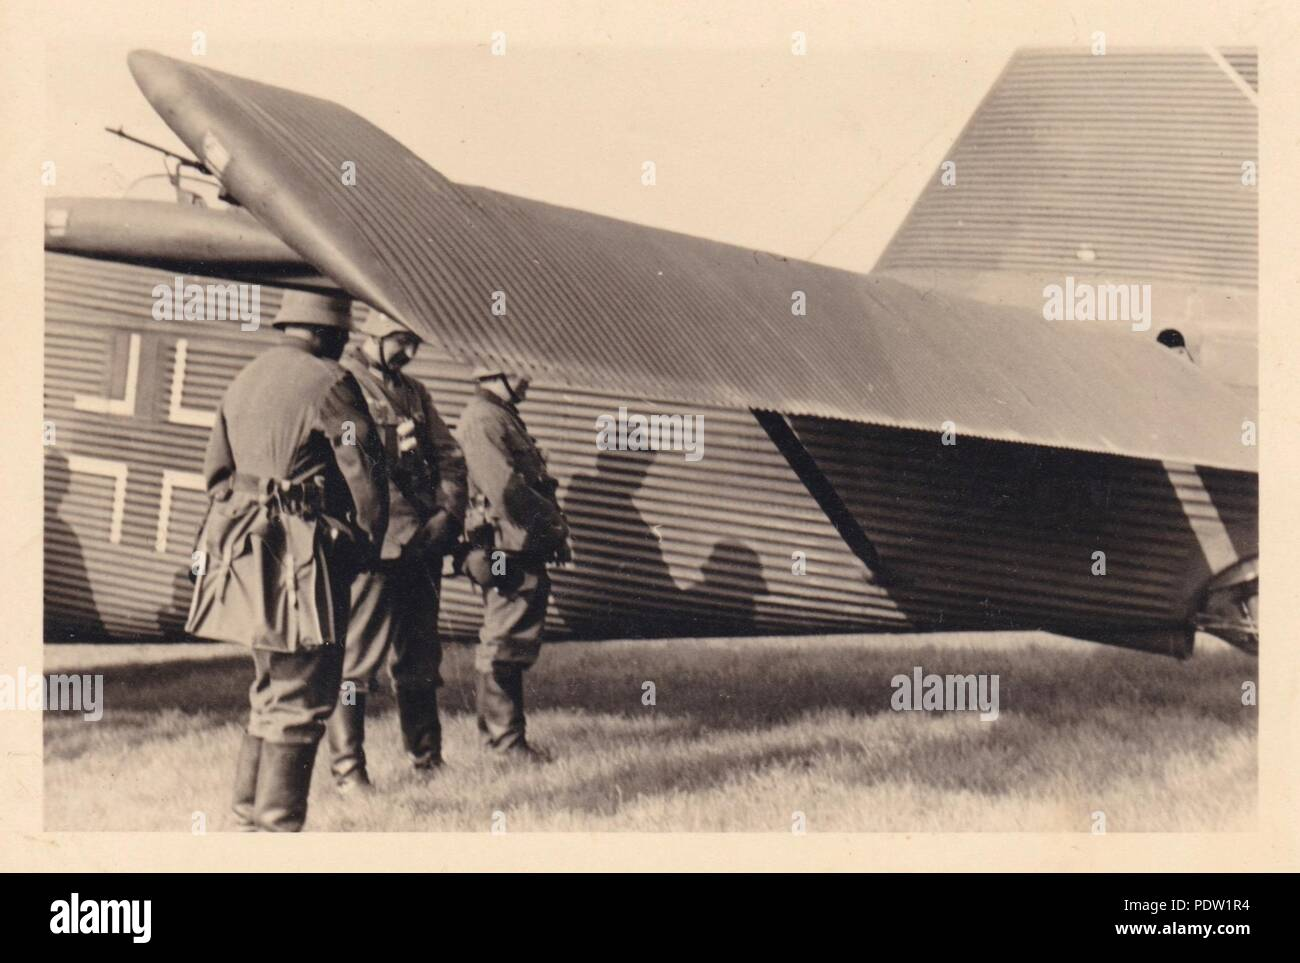 Image from the photo album of Oberfeldwebel Karl Gendner of 1. Staffel, Kampfgeschwader 40: German infantrymen take a preflight comfort-break, prior to boarding Junkers Ju 52/3m transport aircraft at Lüben airfield in eastern Germany, en route to Deblin in Poland, September 1939. Karl Gendner was a pilot with 3./KGzbV 9 at this time. - Stock Image